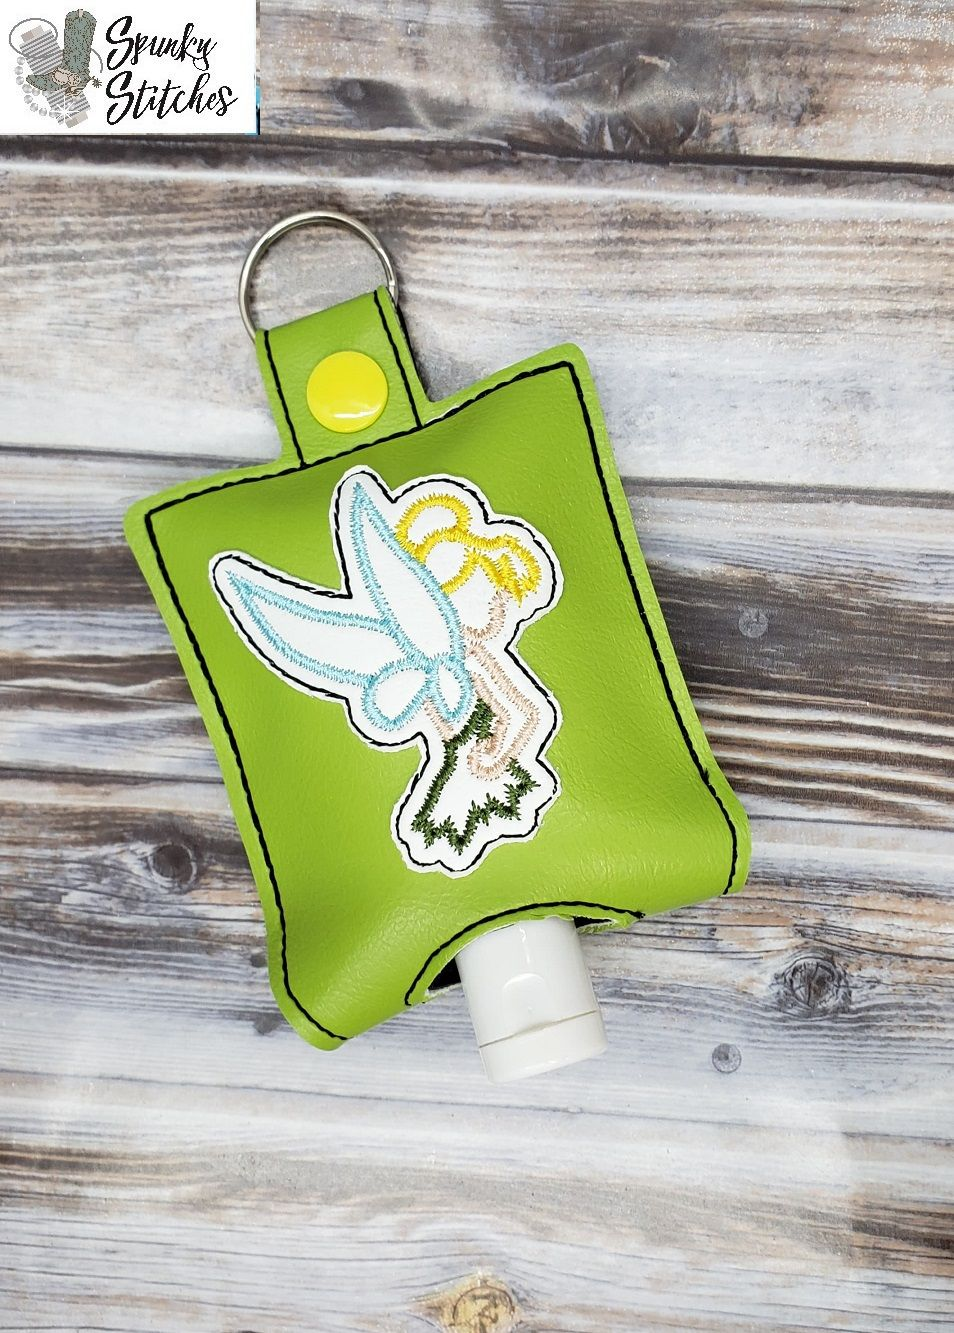 Tinkerbelle Sanitizer Holder Key Fob Hand Sanitizer Holder